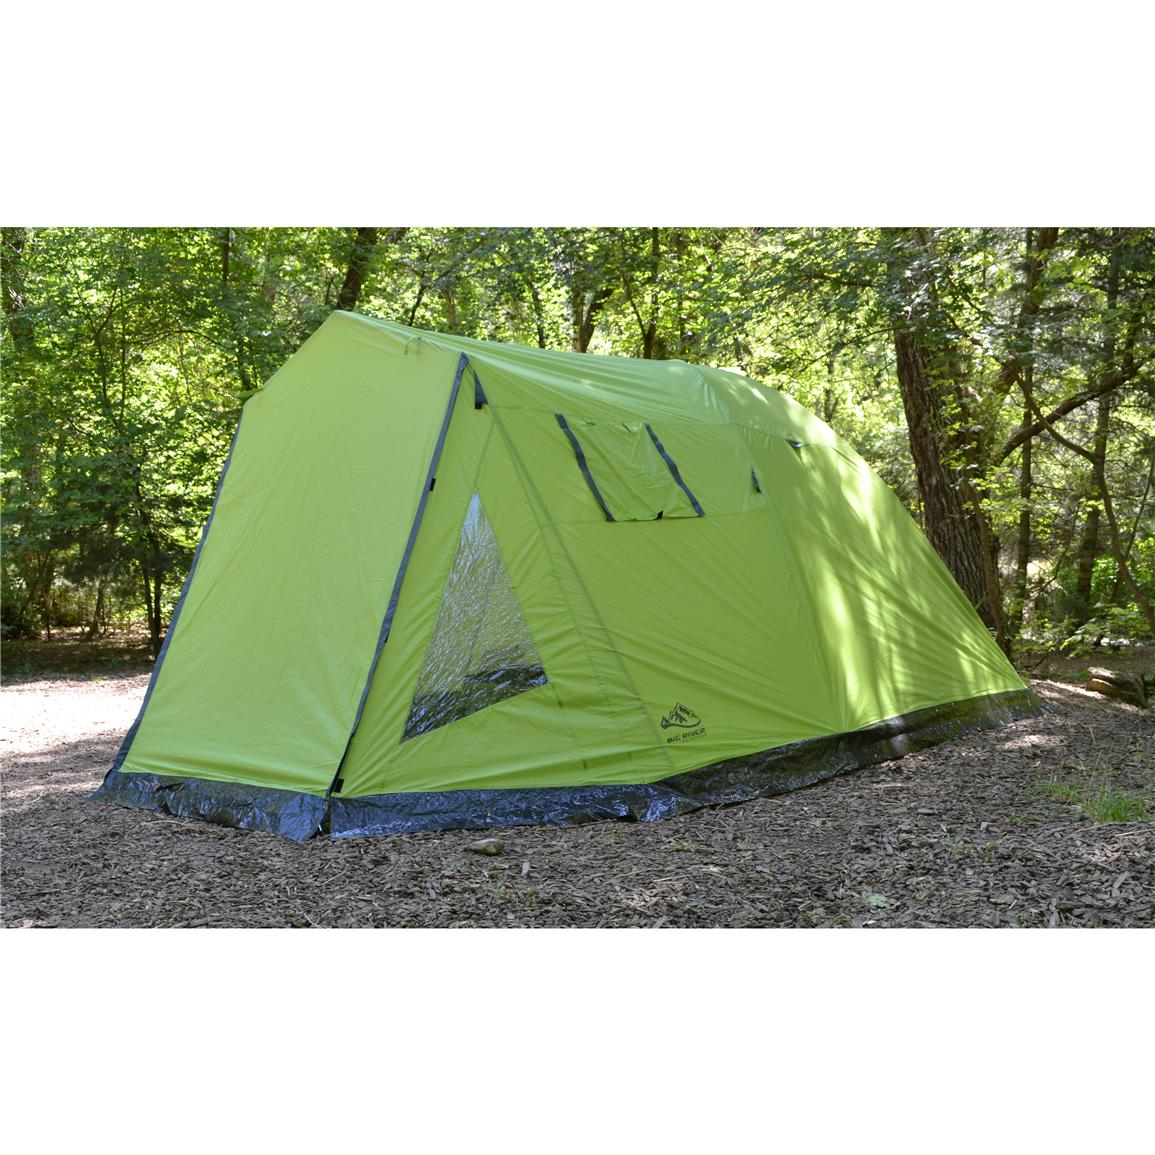 Big River Outdoors 6-Person Lake Creek Tent